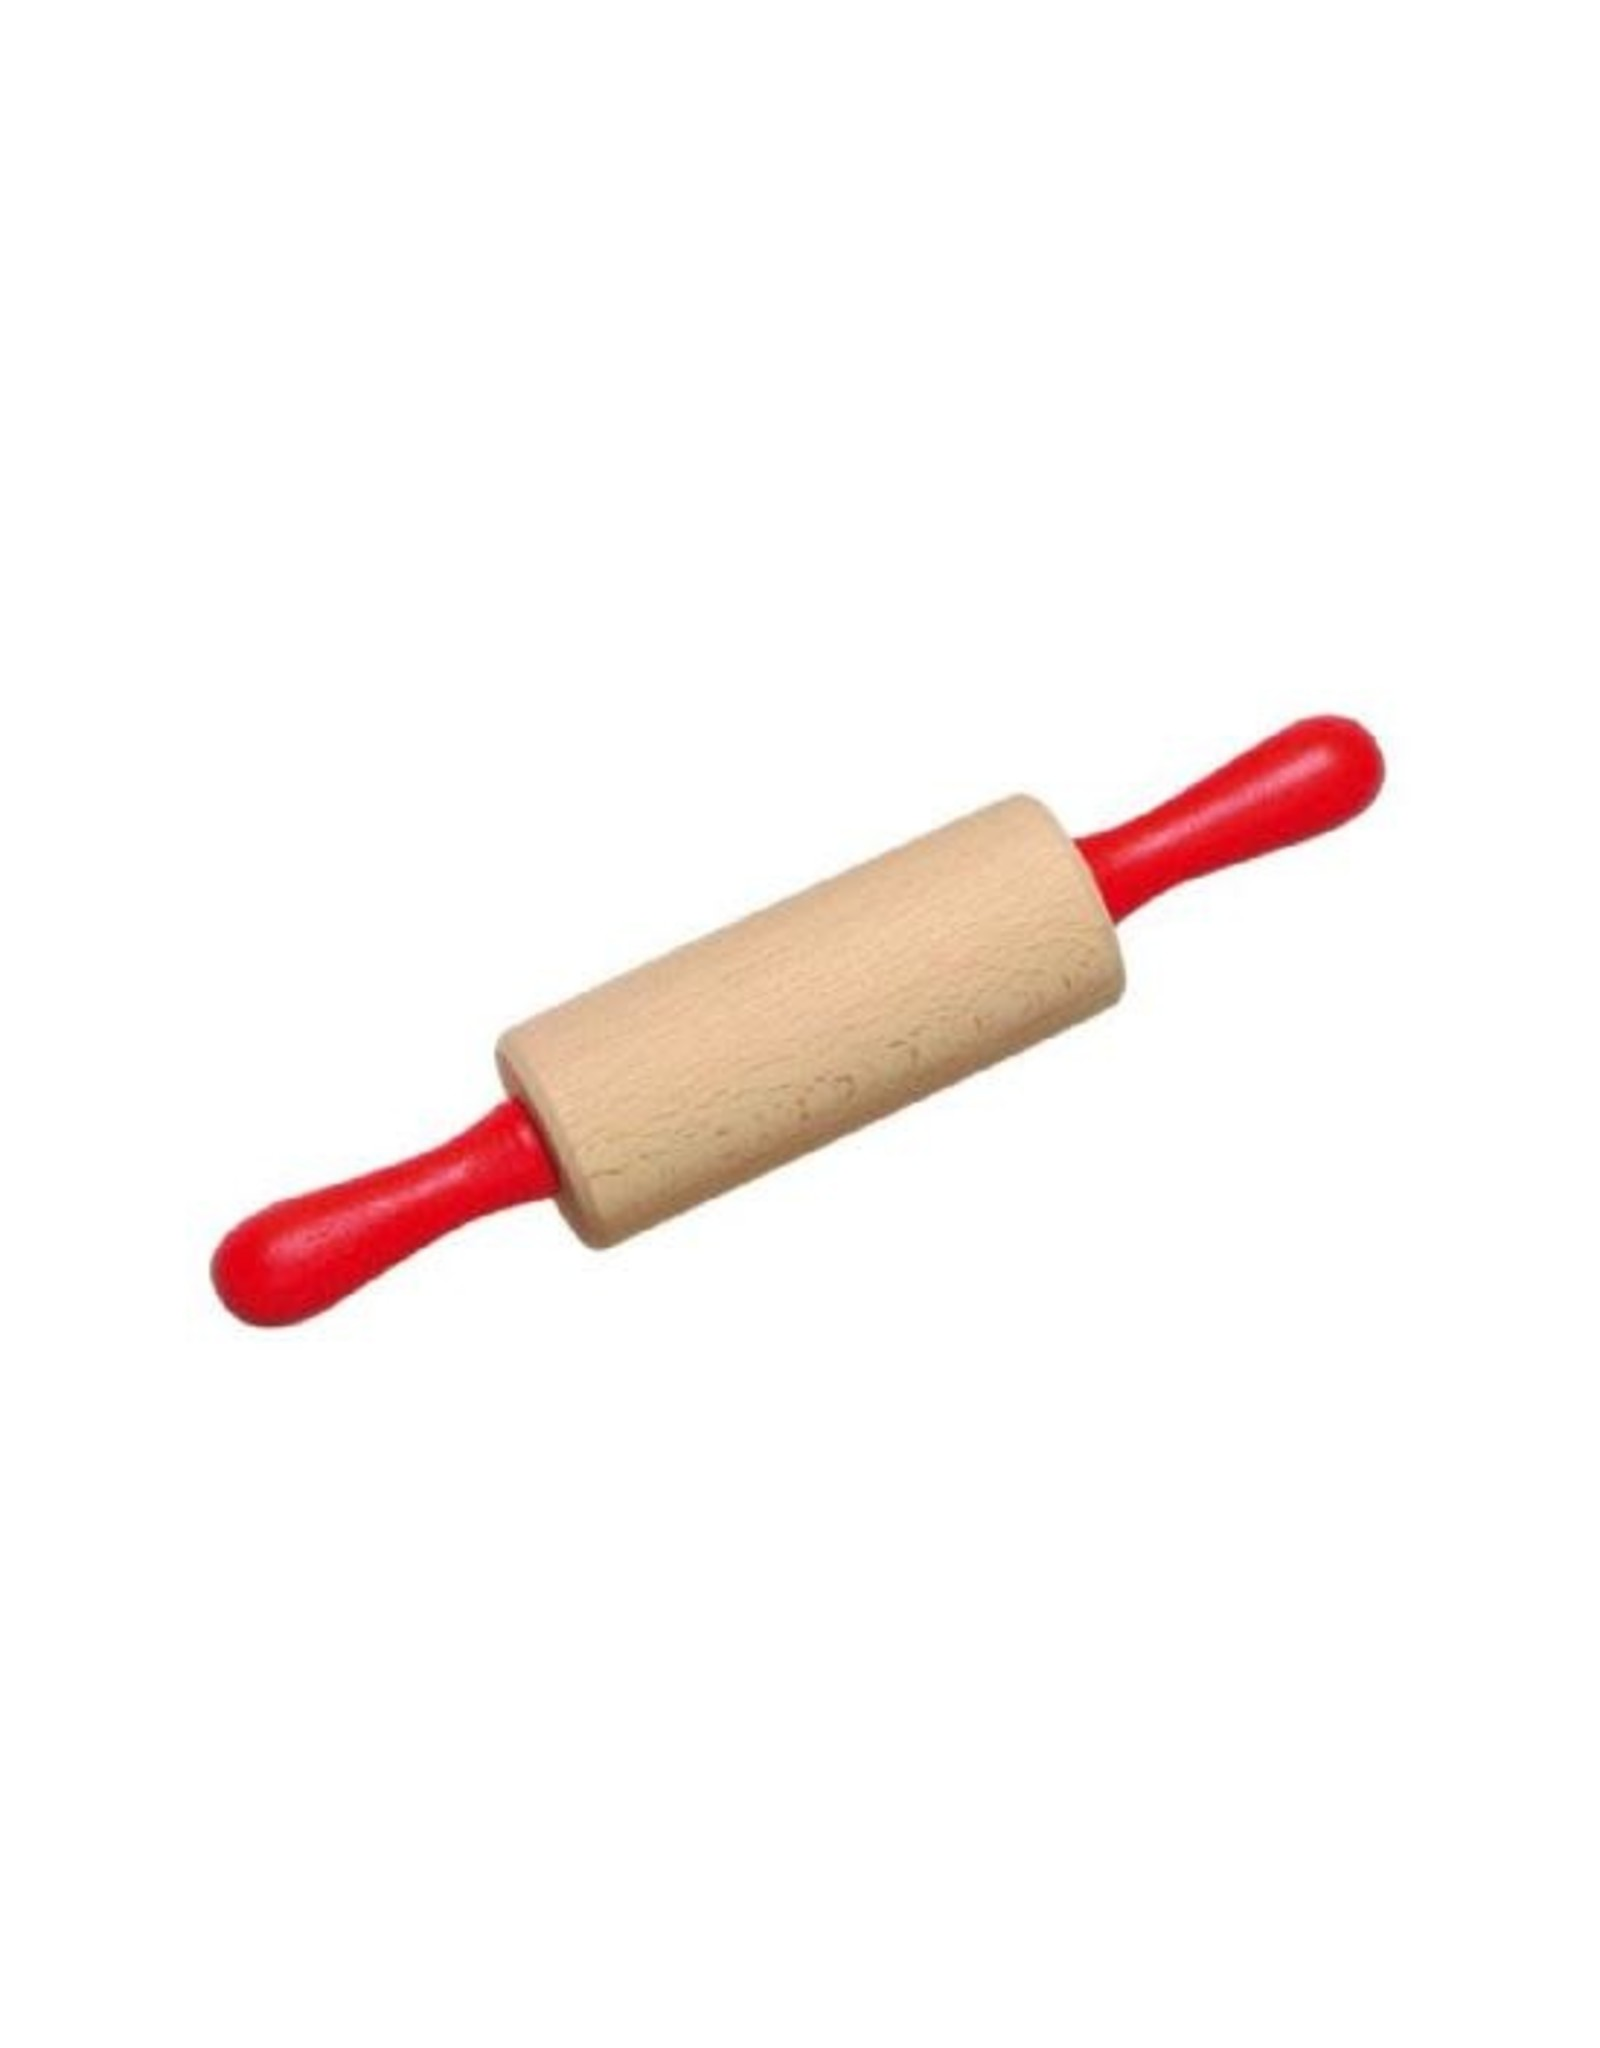 Rolling Pin - Red Handles